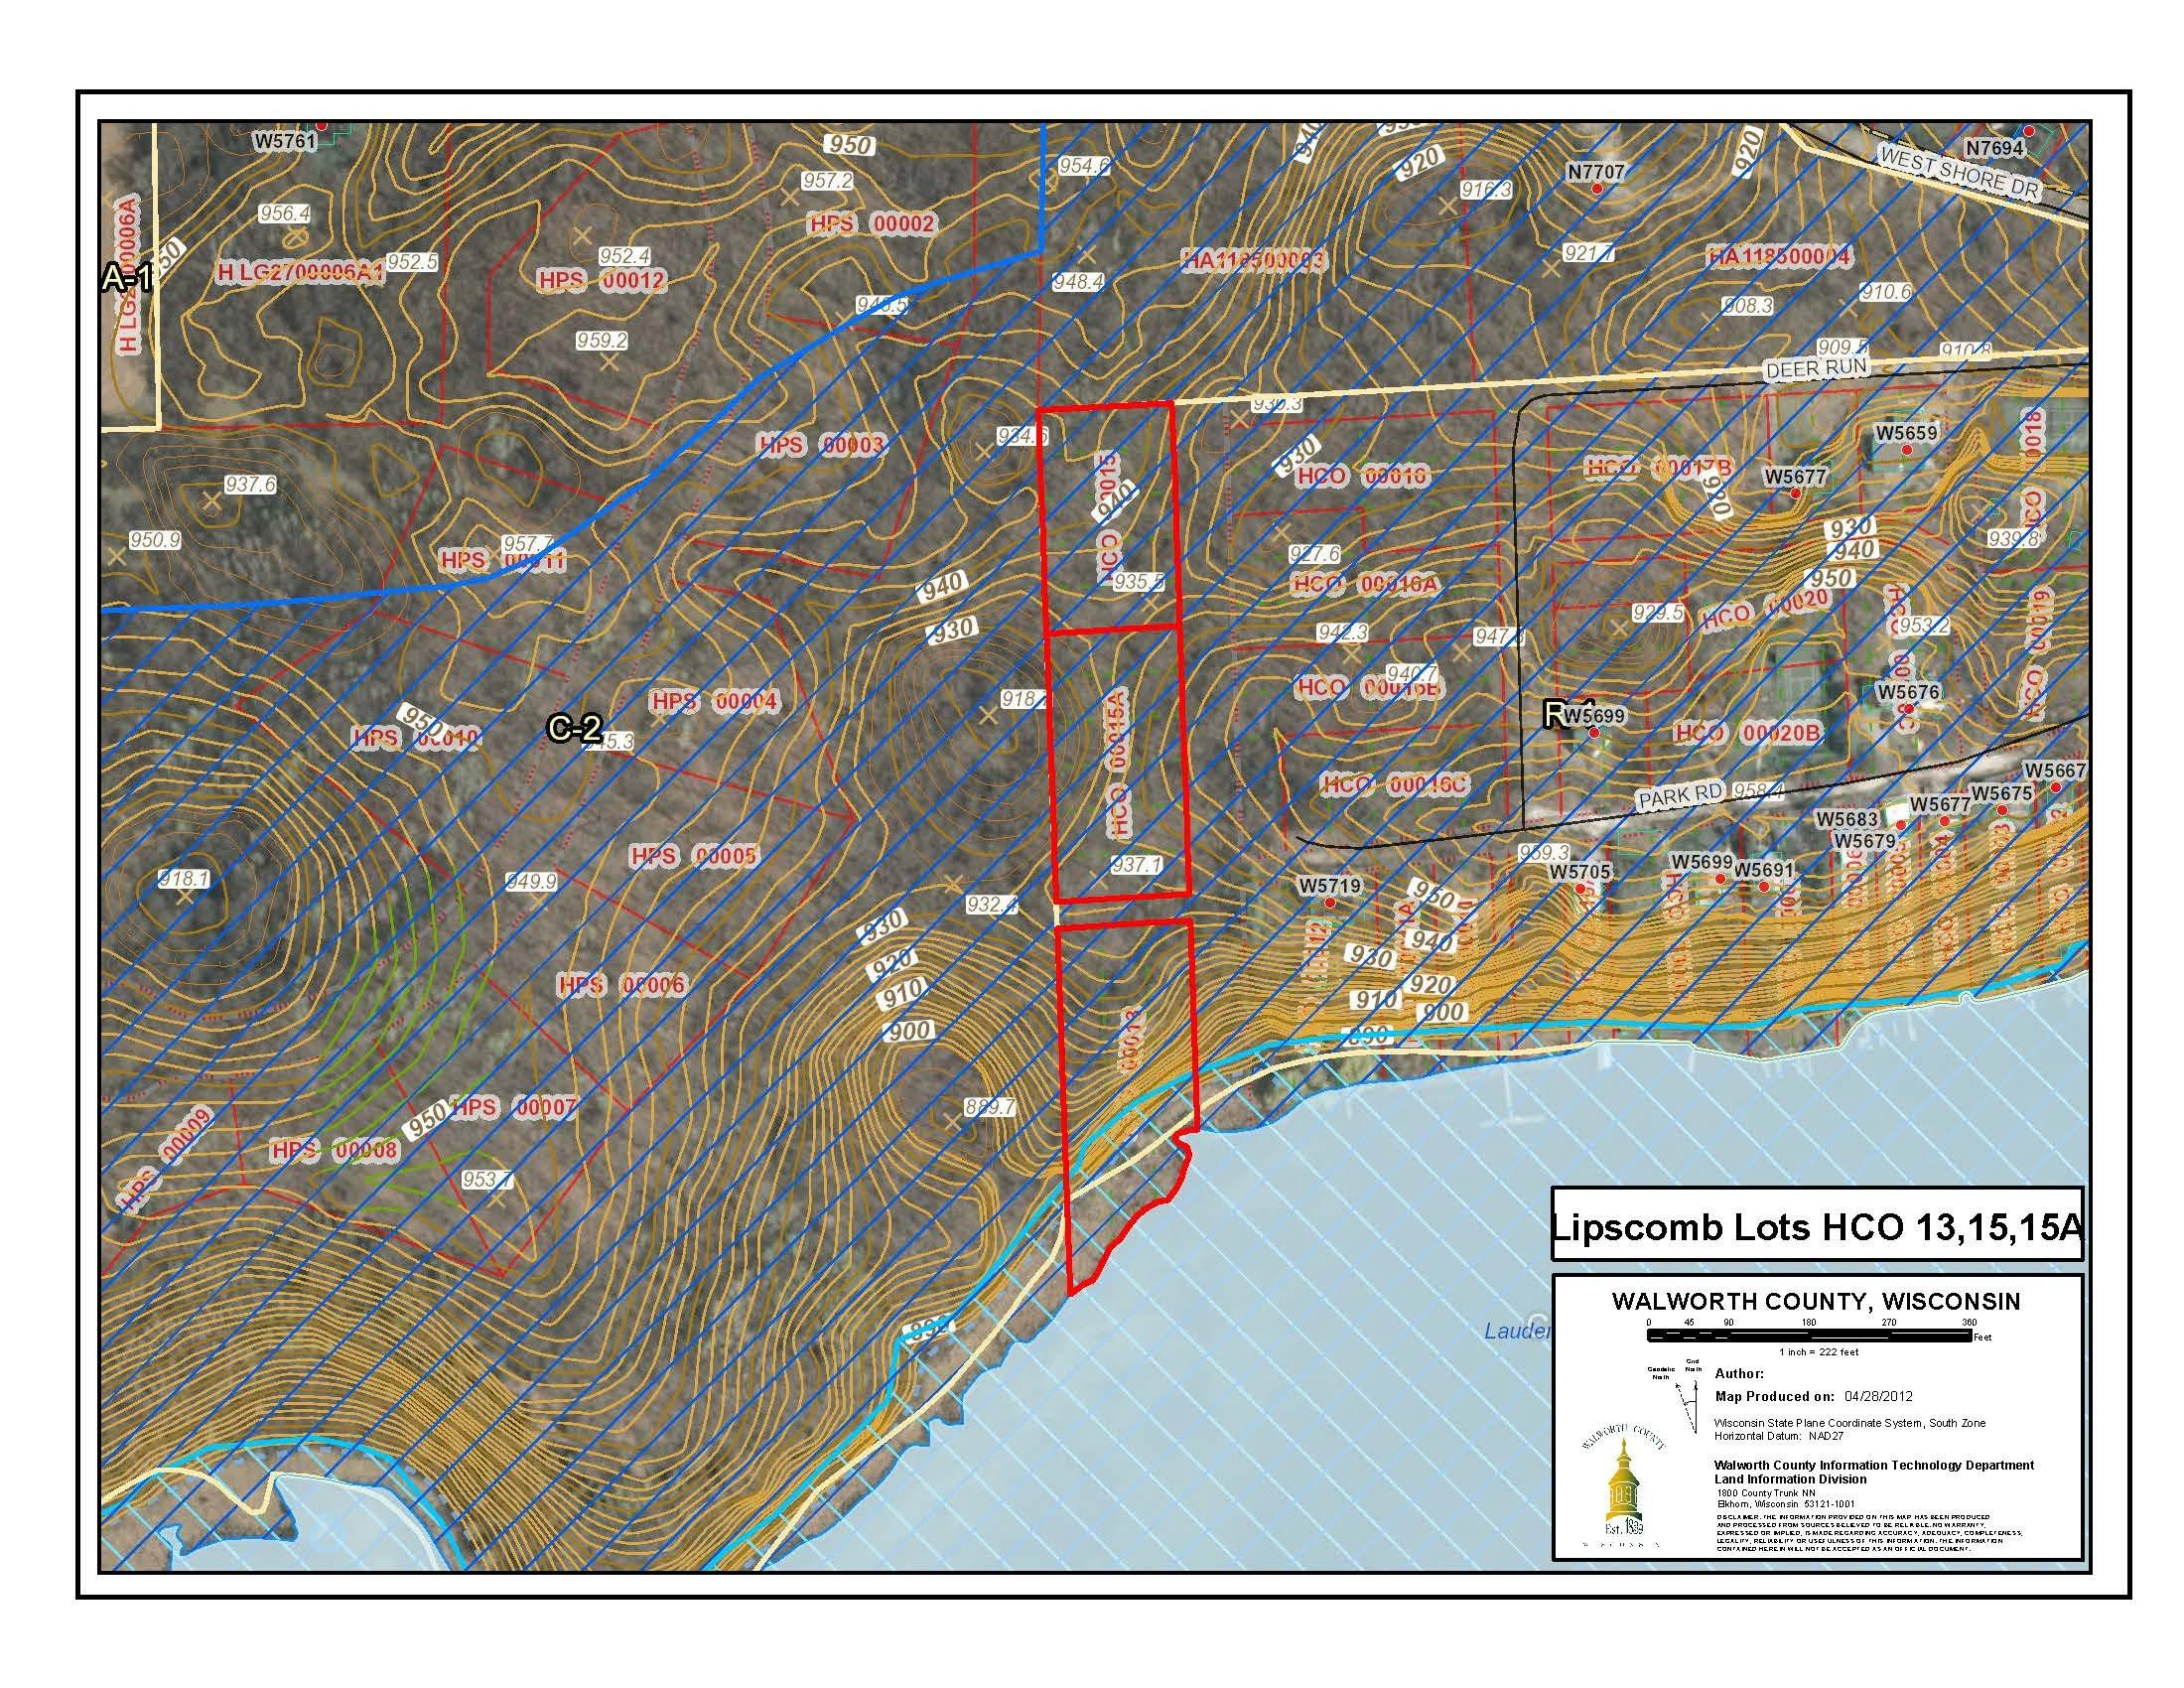 Plat Map HCO 13 15 15A